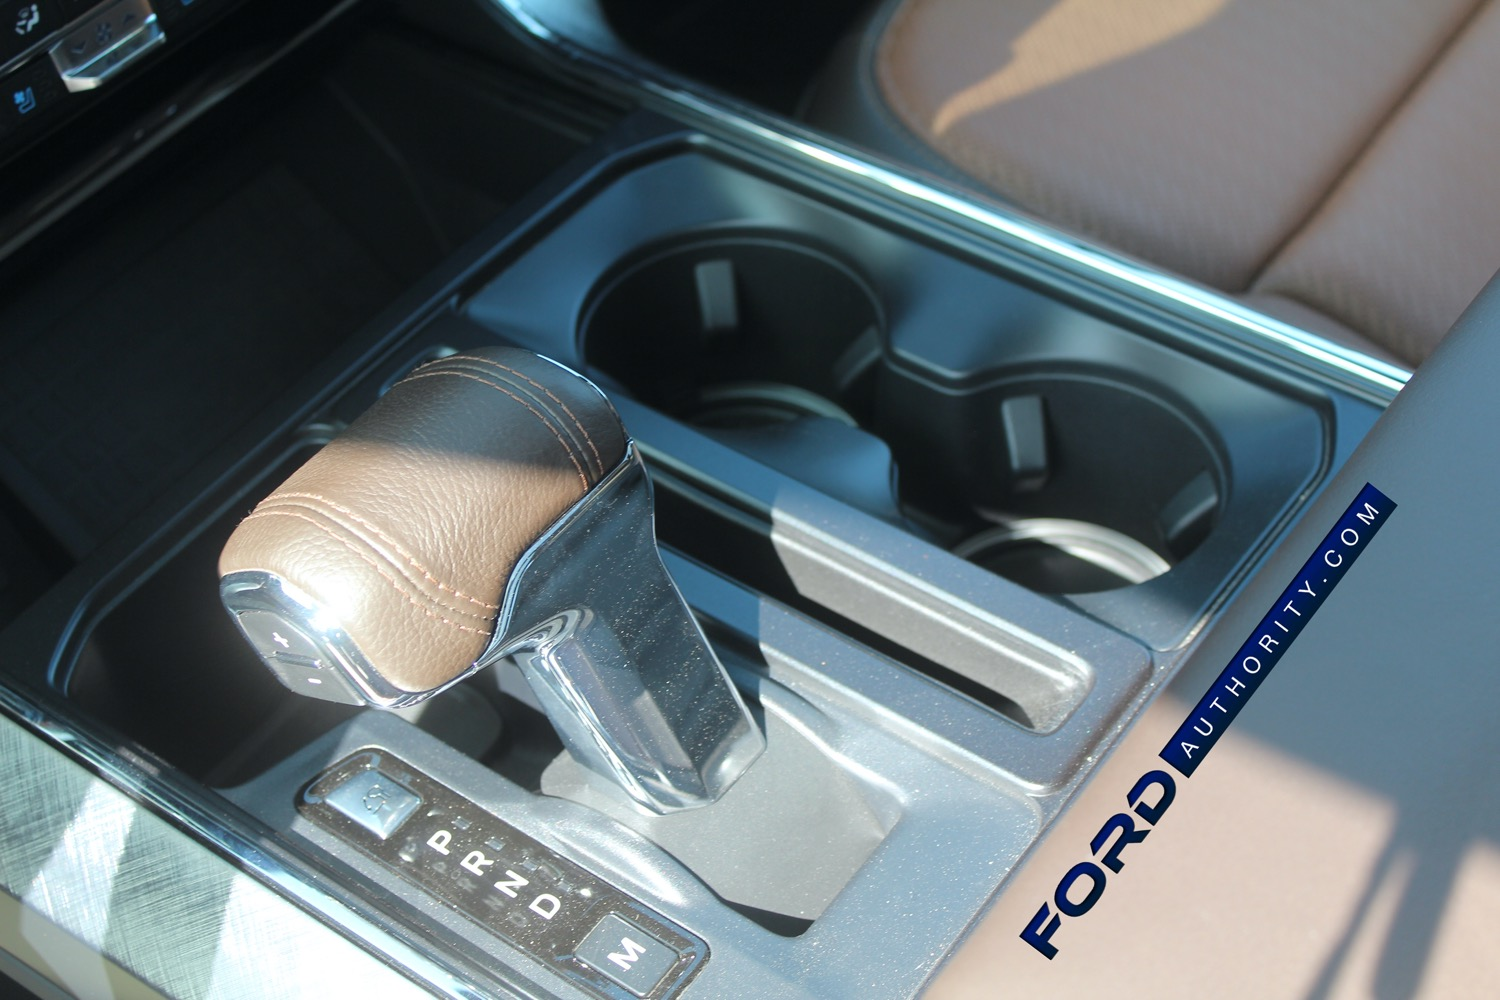 2021-Ford-F-150-King-Ranch-Interior-Front-Row-023-center-console-fold-down-shifter.jpg